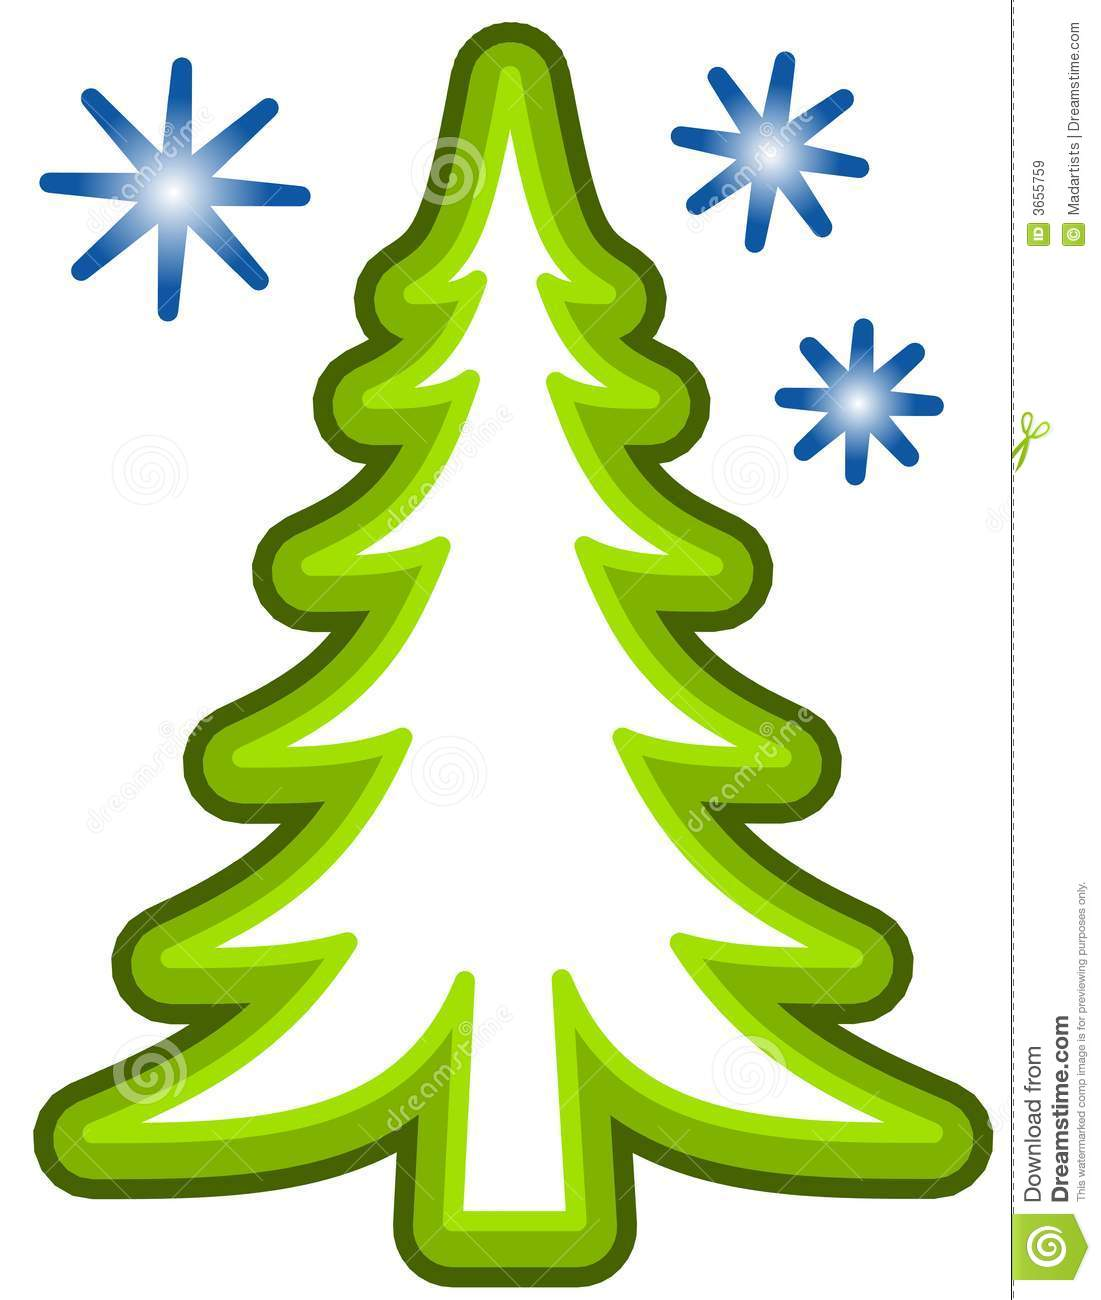 clip art christmas tree outline clipart panda free clipart images rh clipartpanda com free clipart of christmas stockings free clipart of christmas decorations